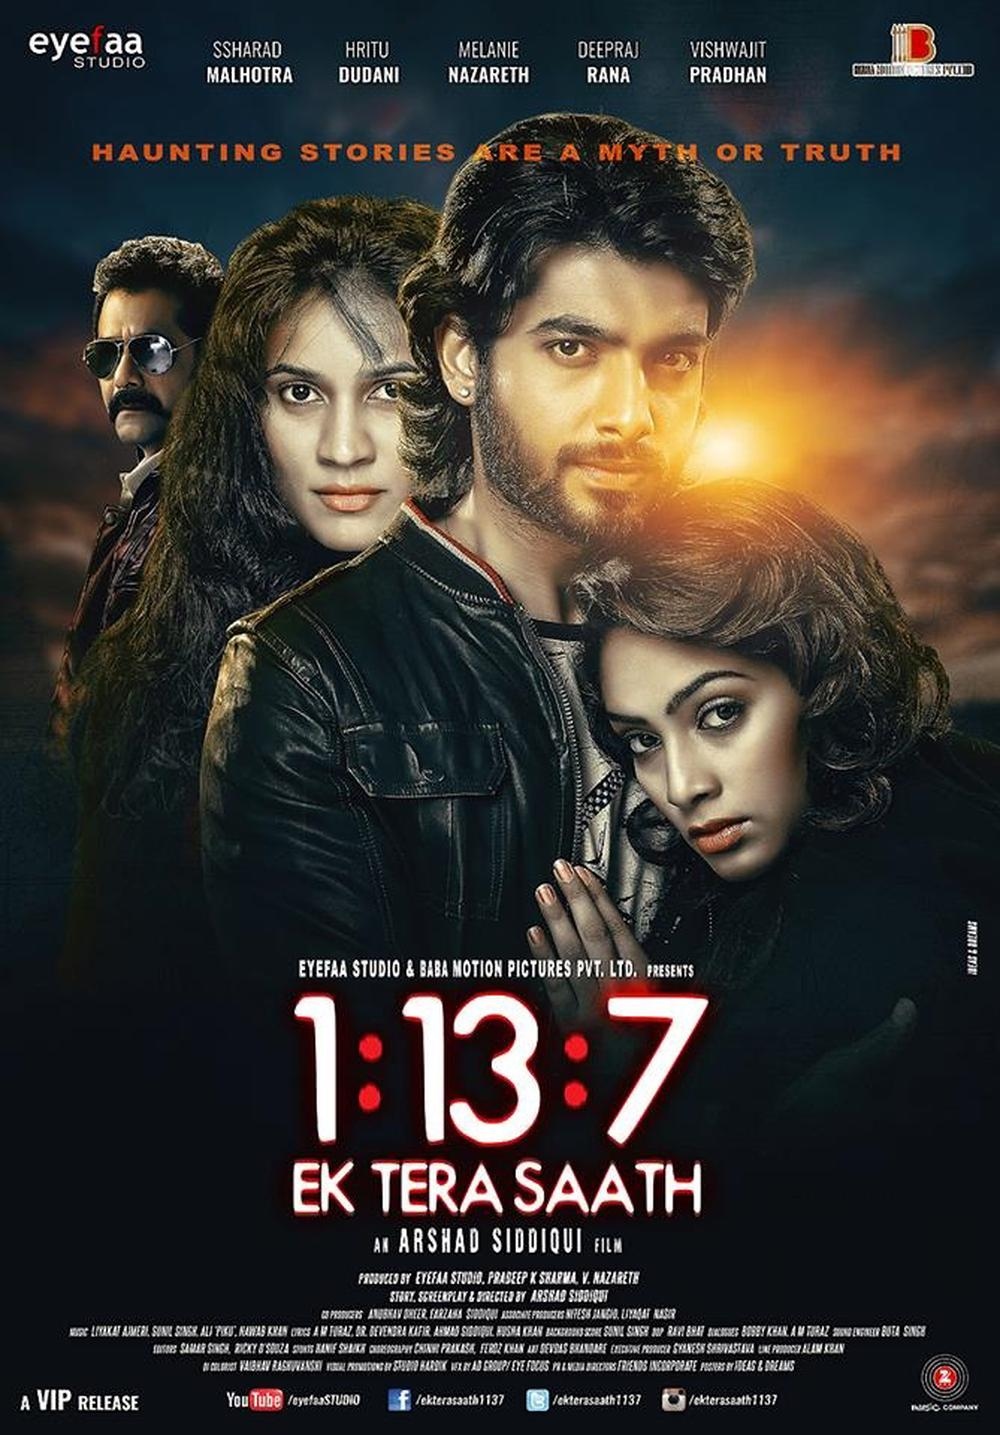 Ek Tera Saath Movie Aka 1 13 7 Ek Tera Saath Movie Review Hindi Movie Review